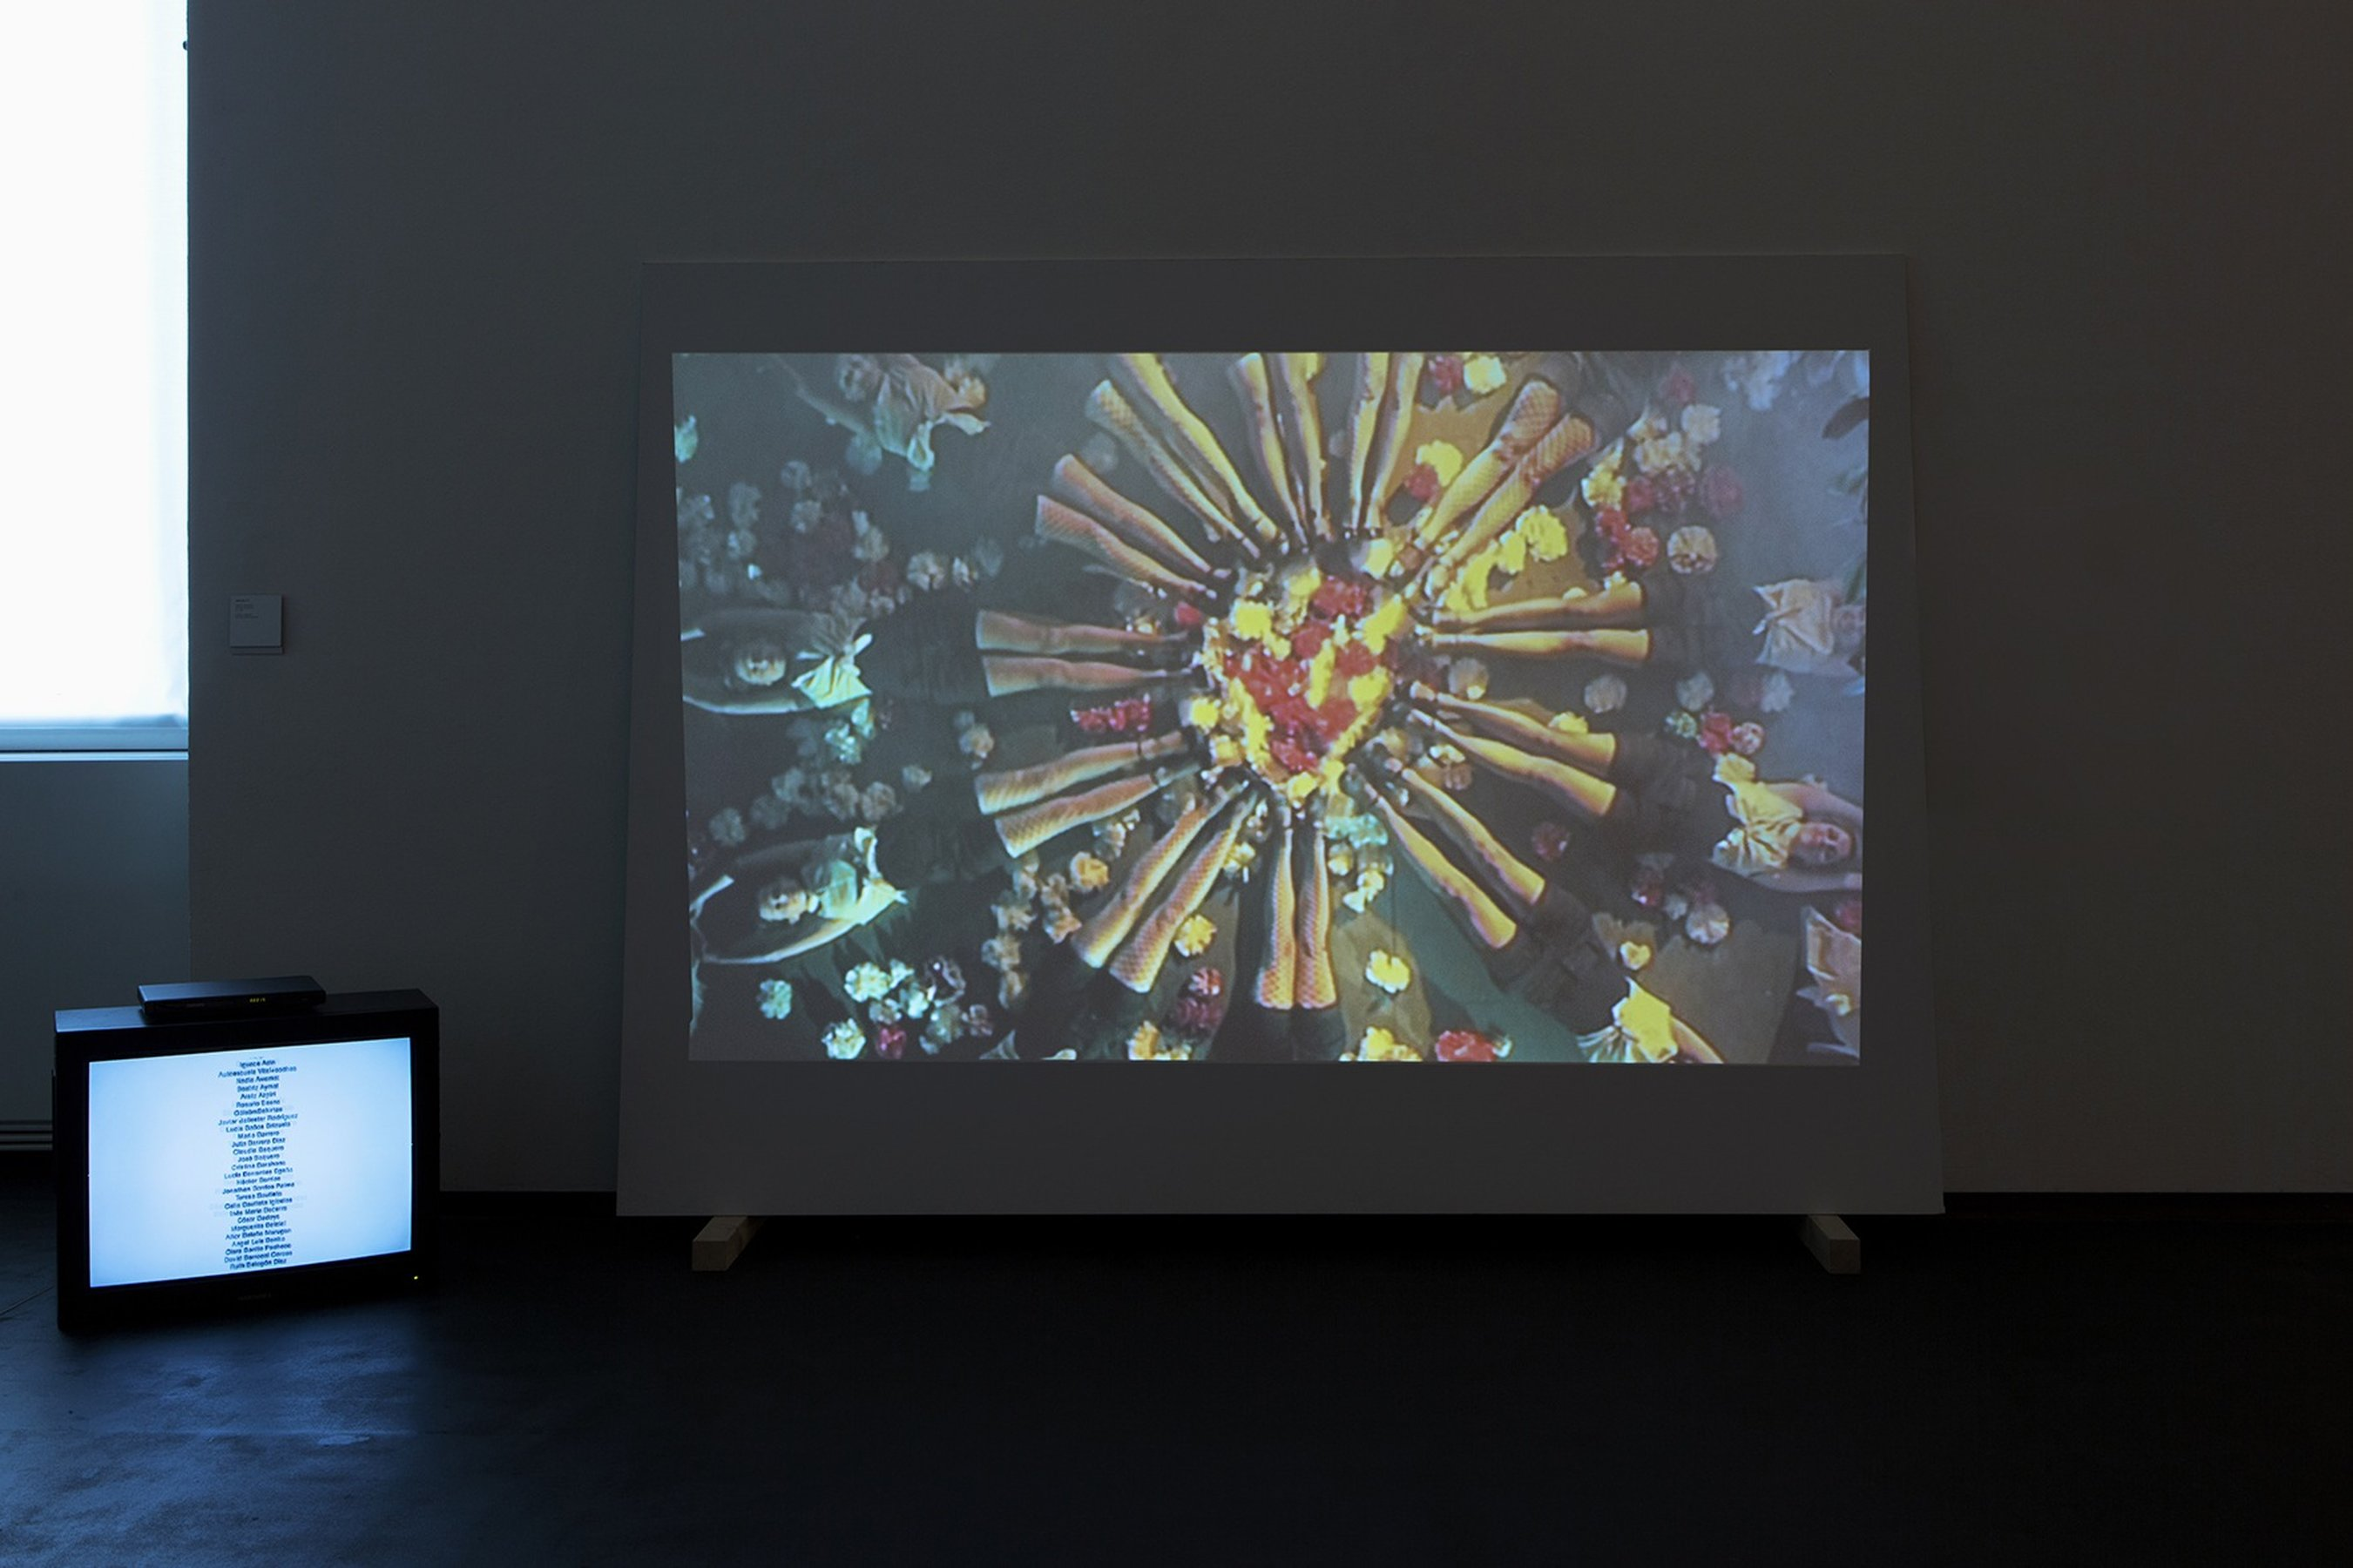 Marinella Senatore, 2009 Speak Easy - Director's Cut, 2009 Stills from HD video projection